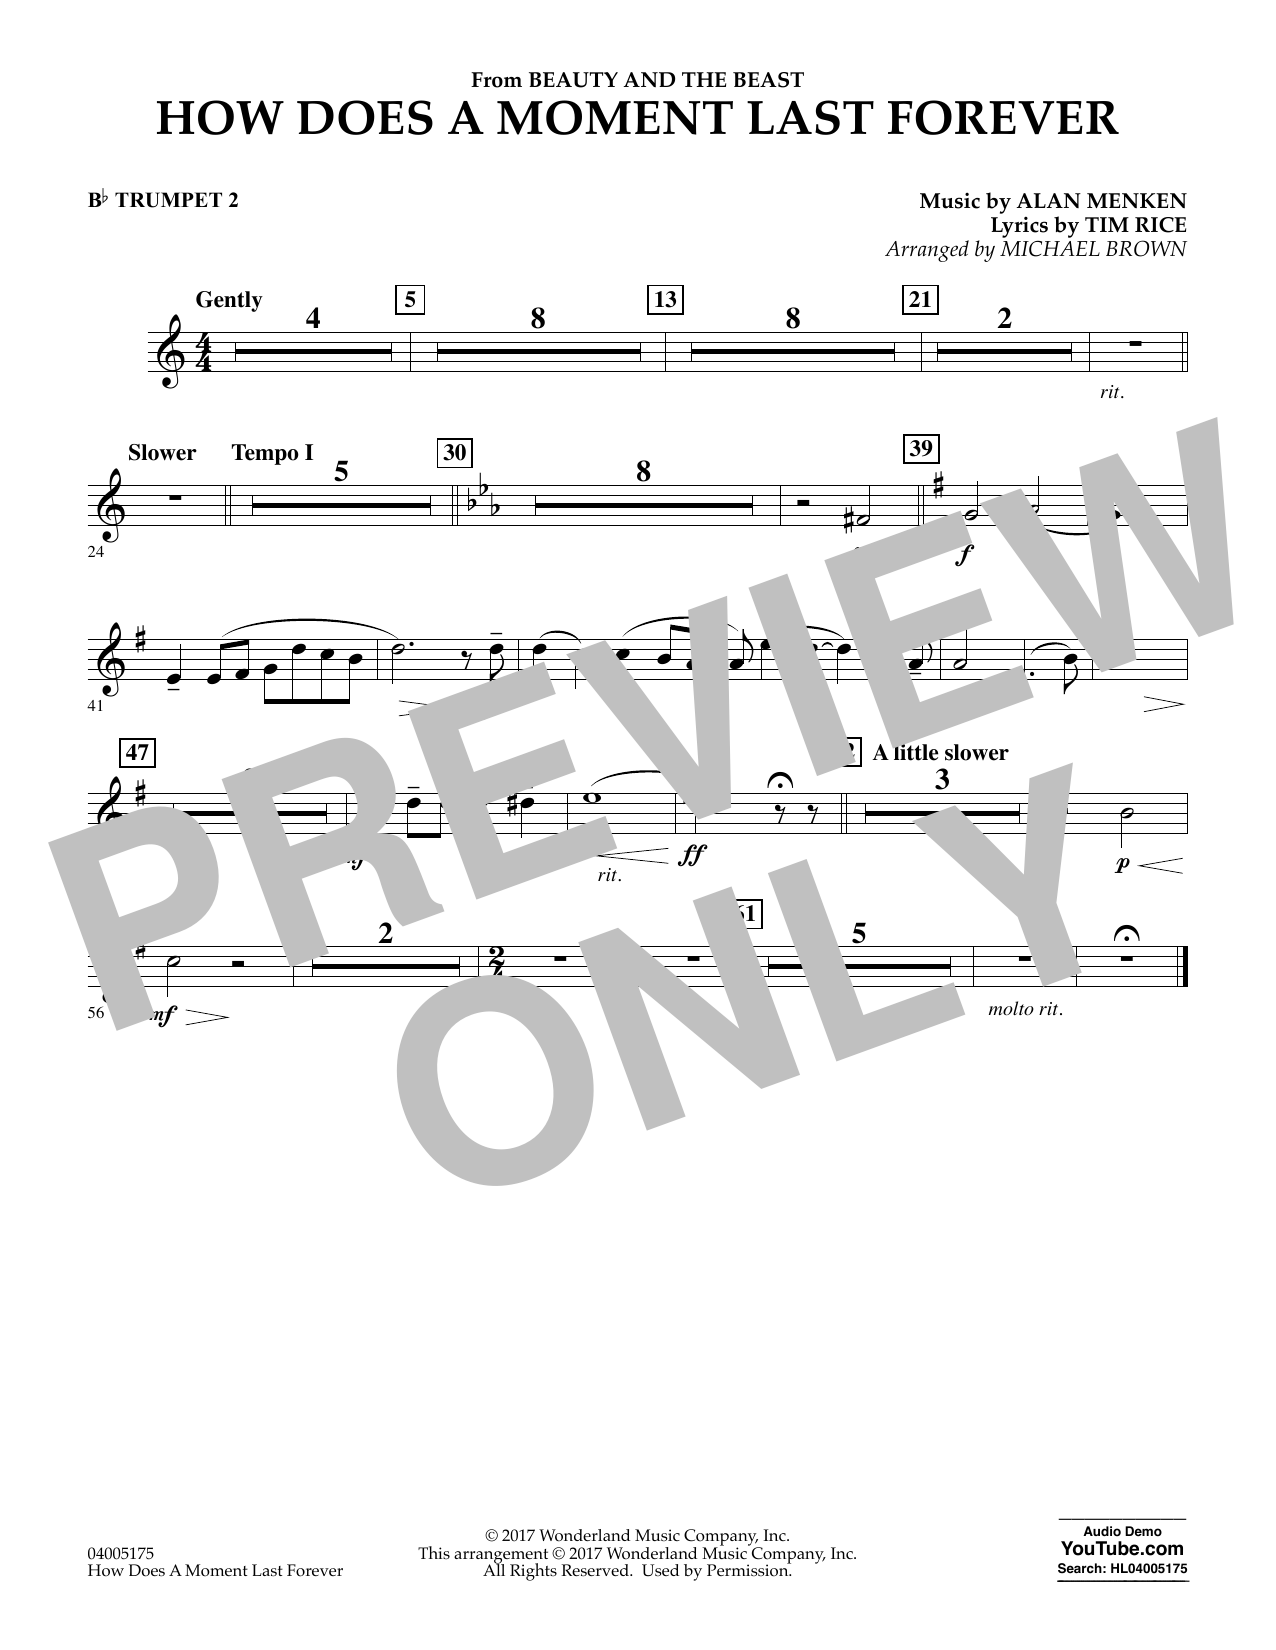 Michael Brown How Does a Moment Last Forever (from Beauty and the Beast) - Bb Trumpet 2 sheet music notes and chords. Download Printable PDF.